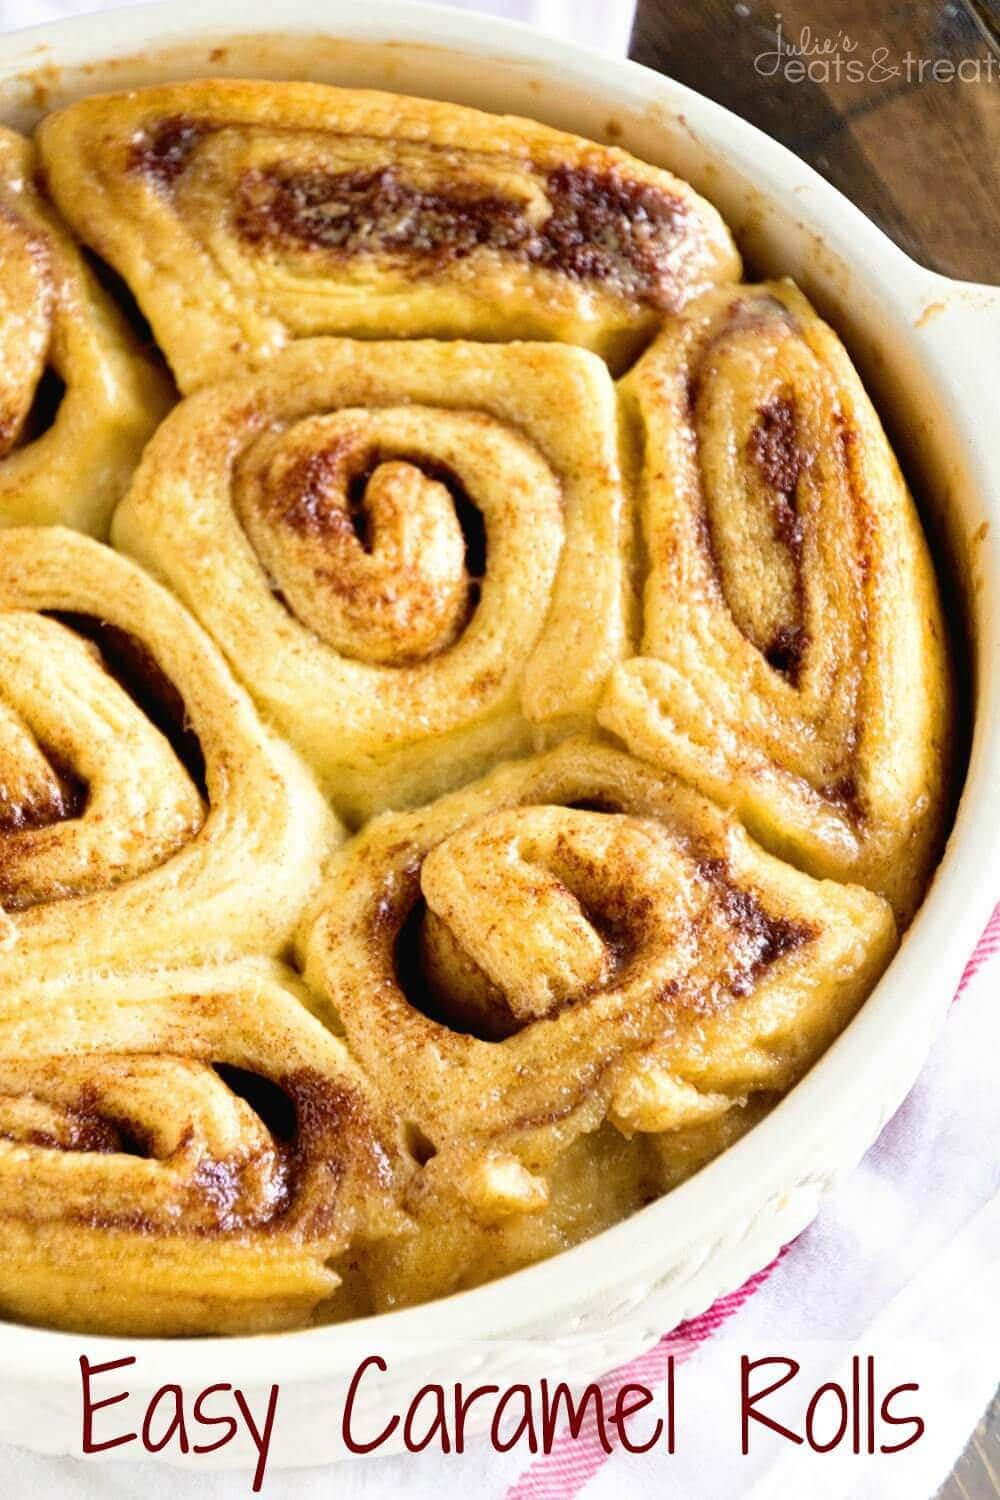 Easy Caramel Rolls ~ Only three ingredients stand between you and gooey caramel rolls! Perfect quick and easy recipe for lazy mornings!